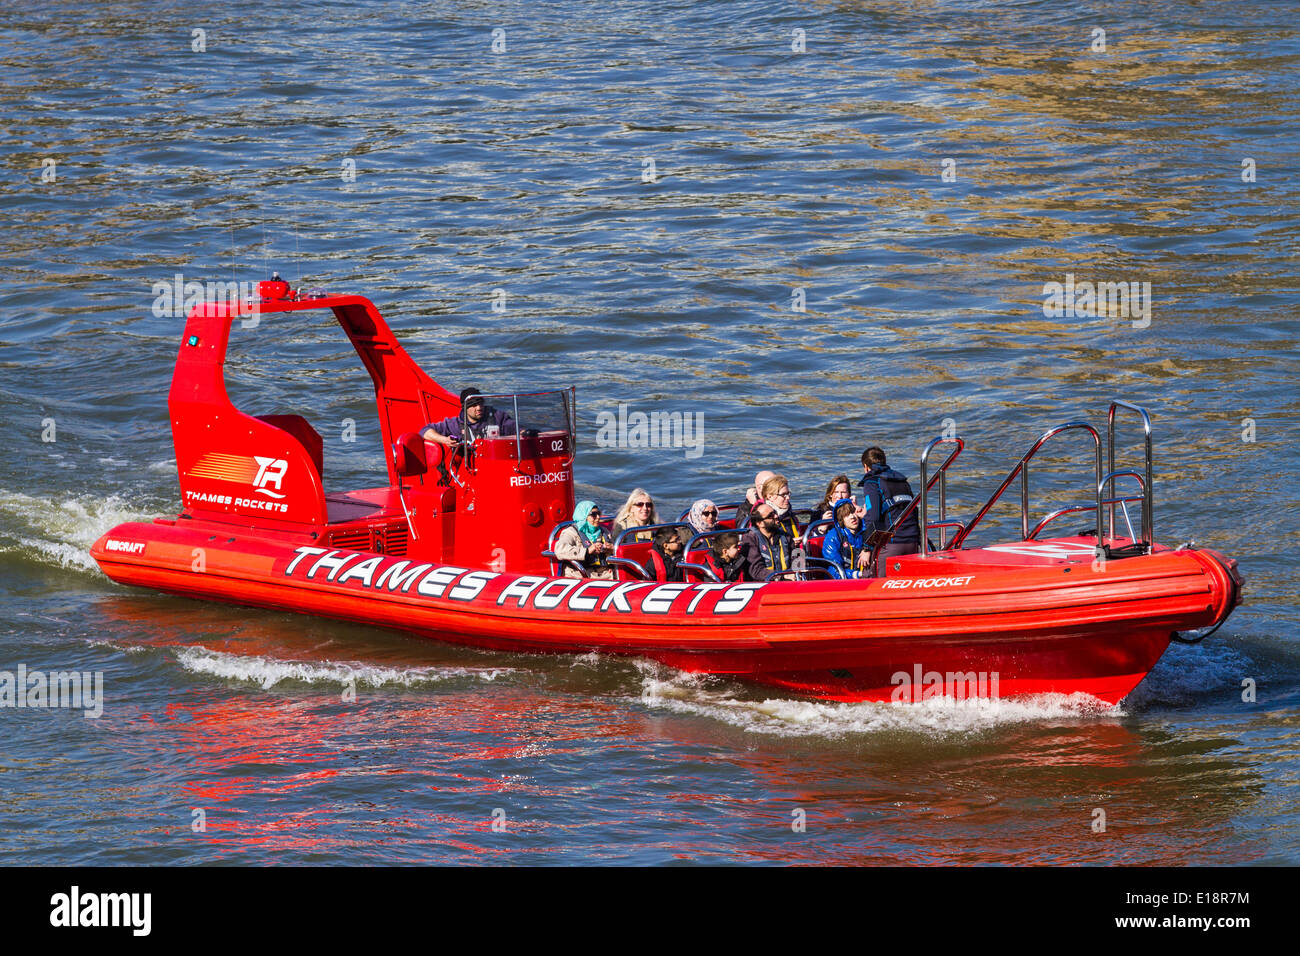 Thames Rockets on the river Thames - London - Stock Image